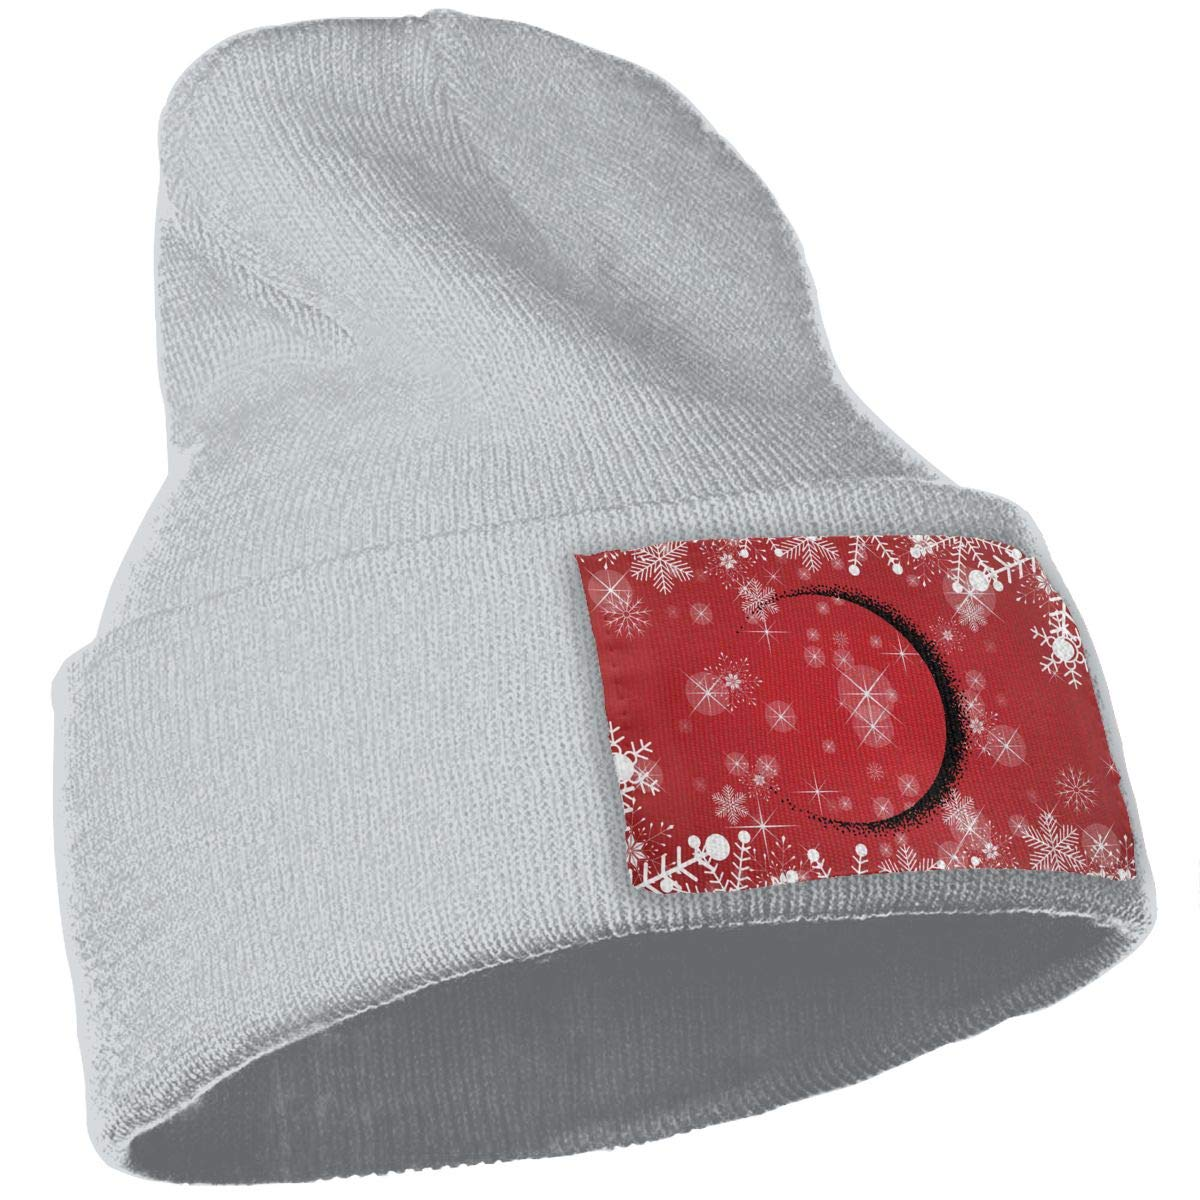 Total Eclipse Observe Men Women Knitting Hats Stretchy /& Soft Ski Cap Beanie